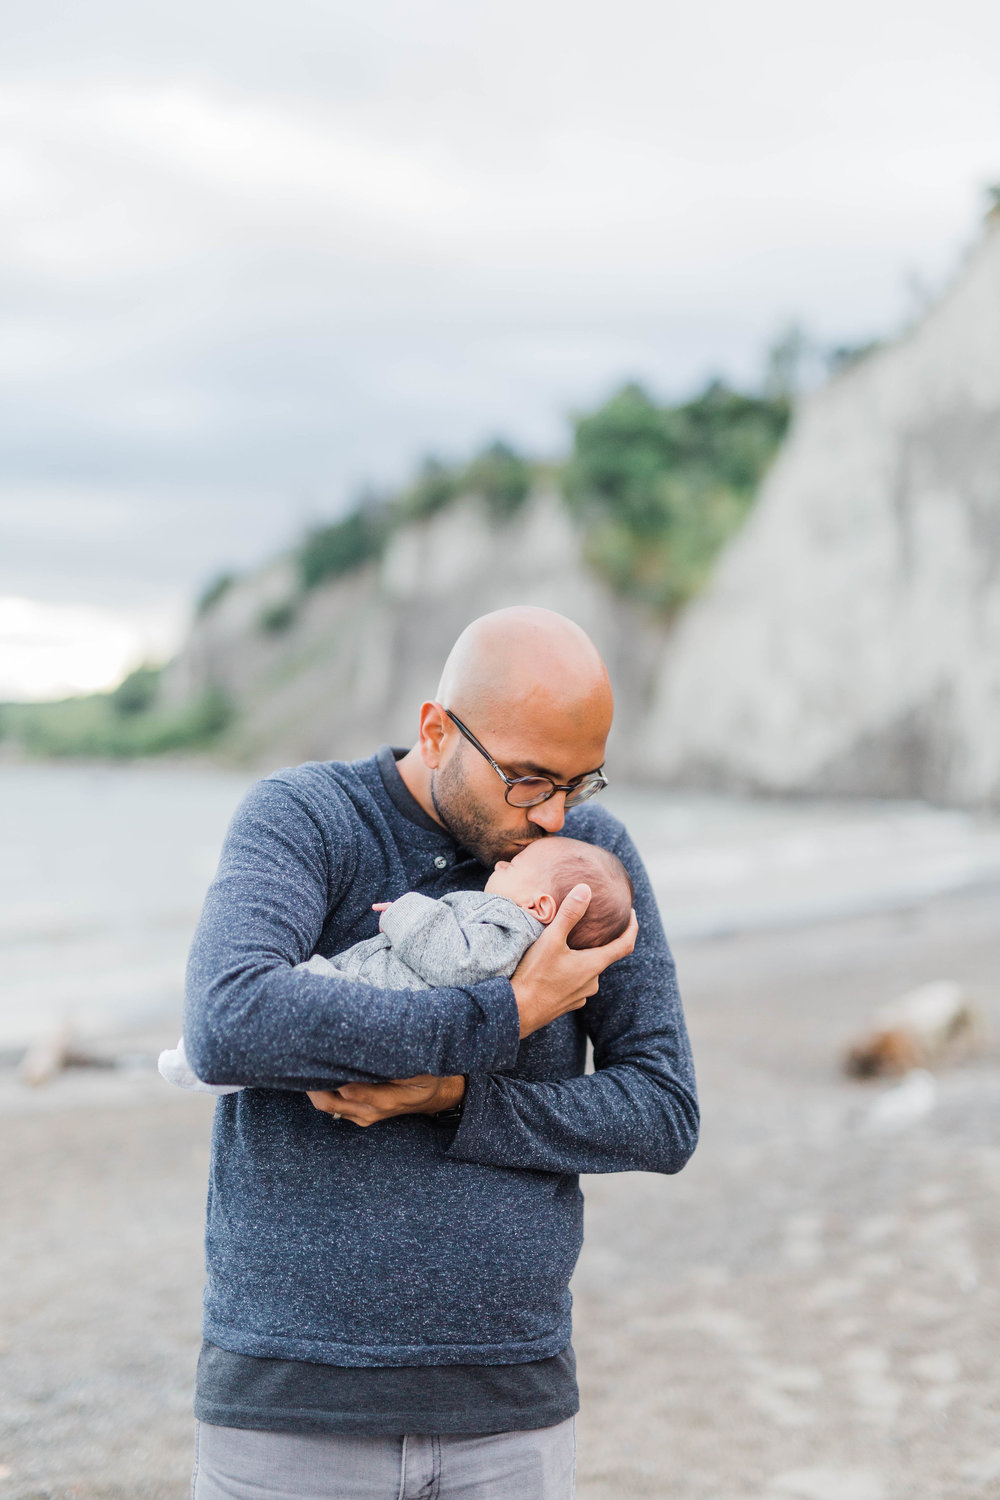 Danielle-Giroux_Lindsay-Sunil_Newborn-Session_Scarborough-Bluffs_-0068.jpg